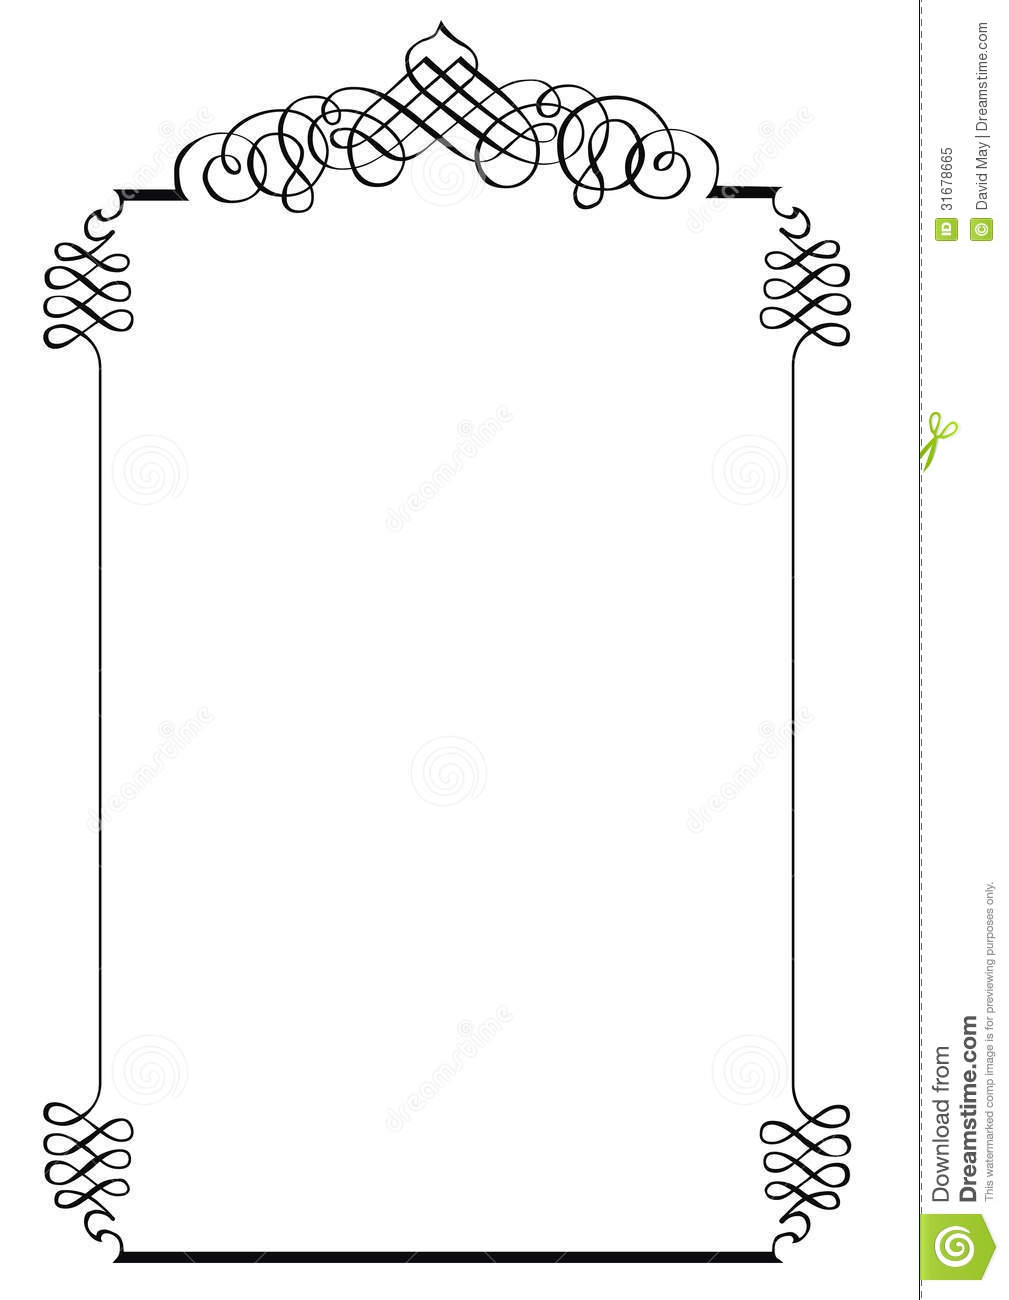 Royalty Free Stock Photo Fancy Page Border One Also Available As File Image31678665 on Swirl Border Pattern